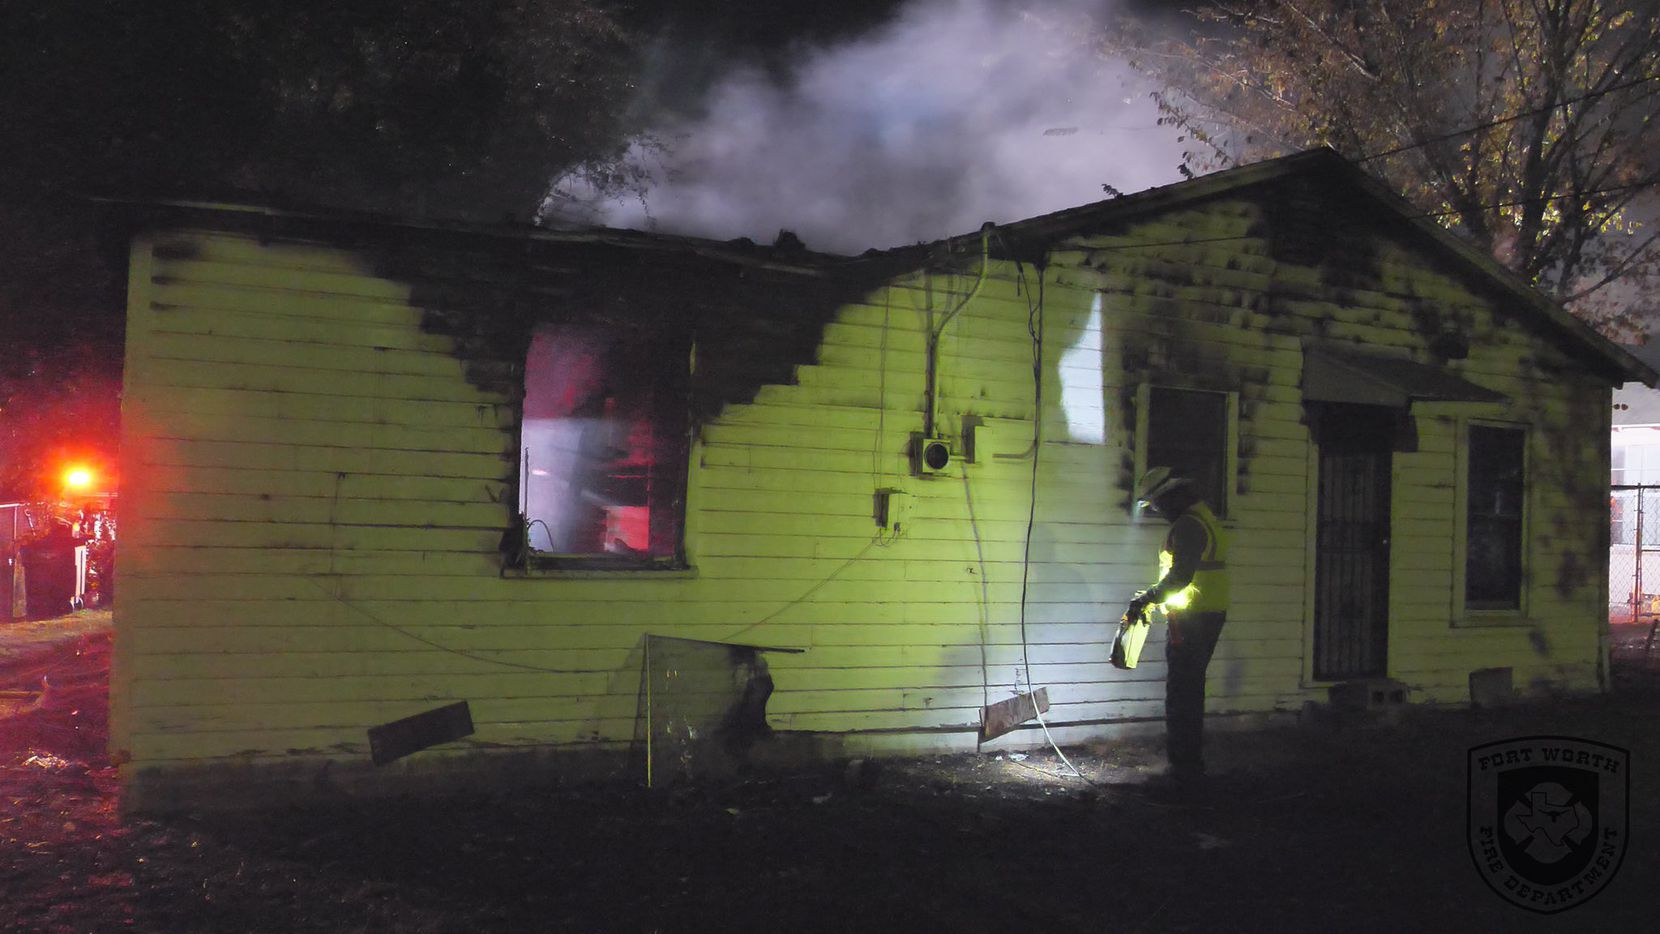 A firefighter examines a home damaged by fire Wednesday morning in Fort Worth. One woman inside was rescued and was hospitalized in serious condition.